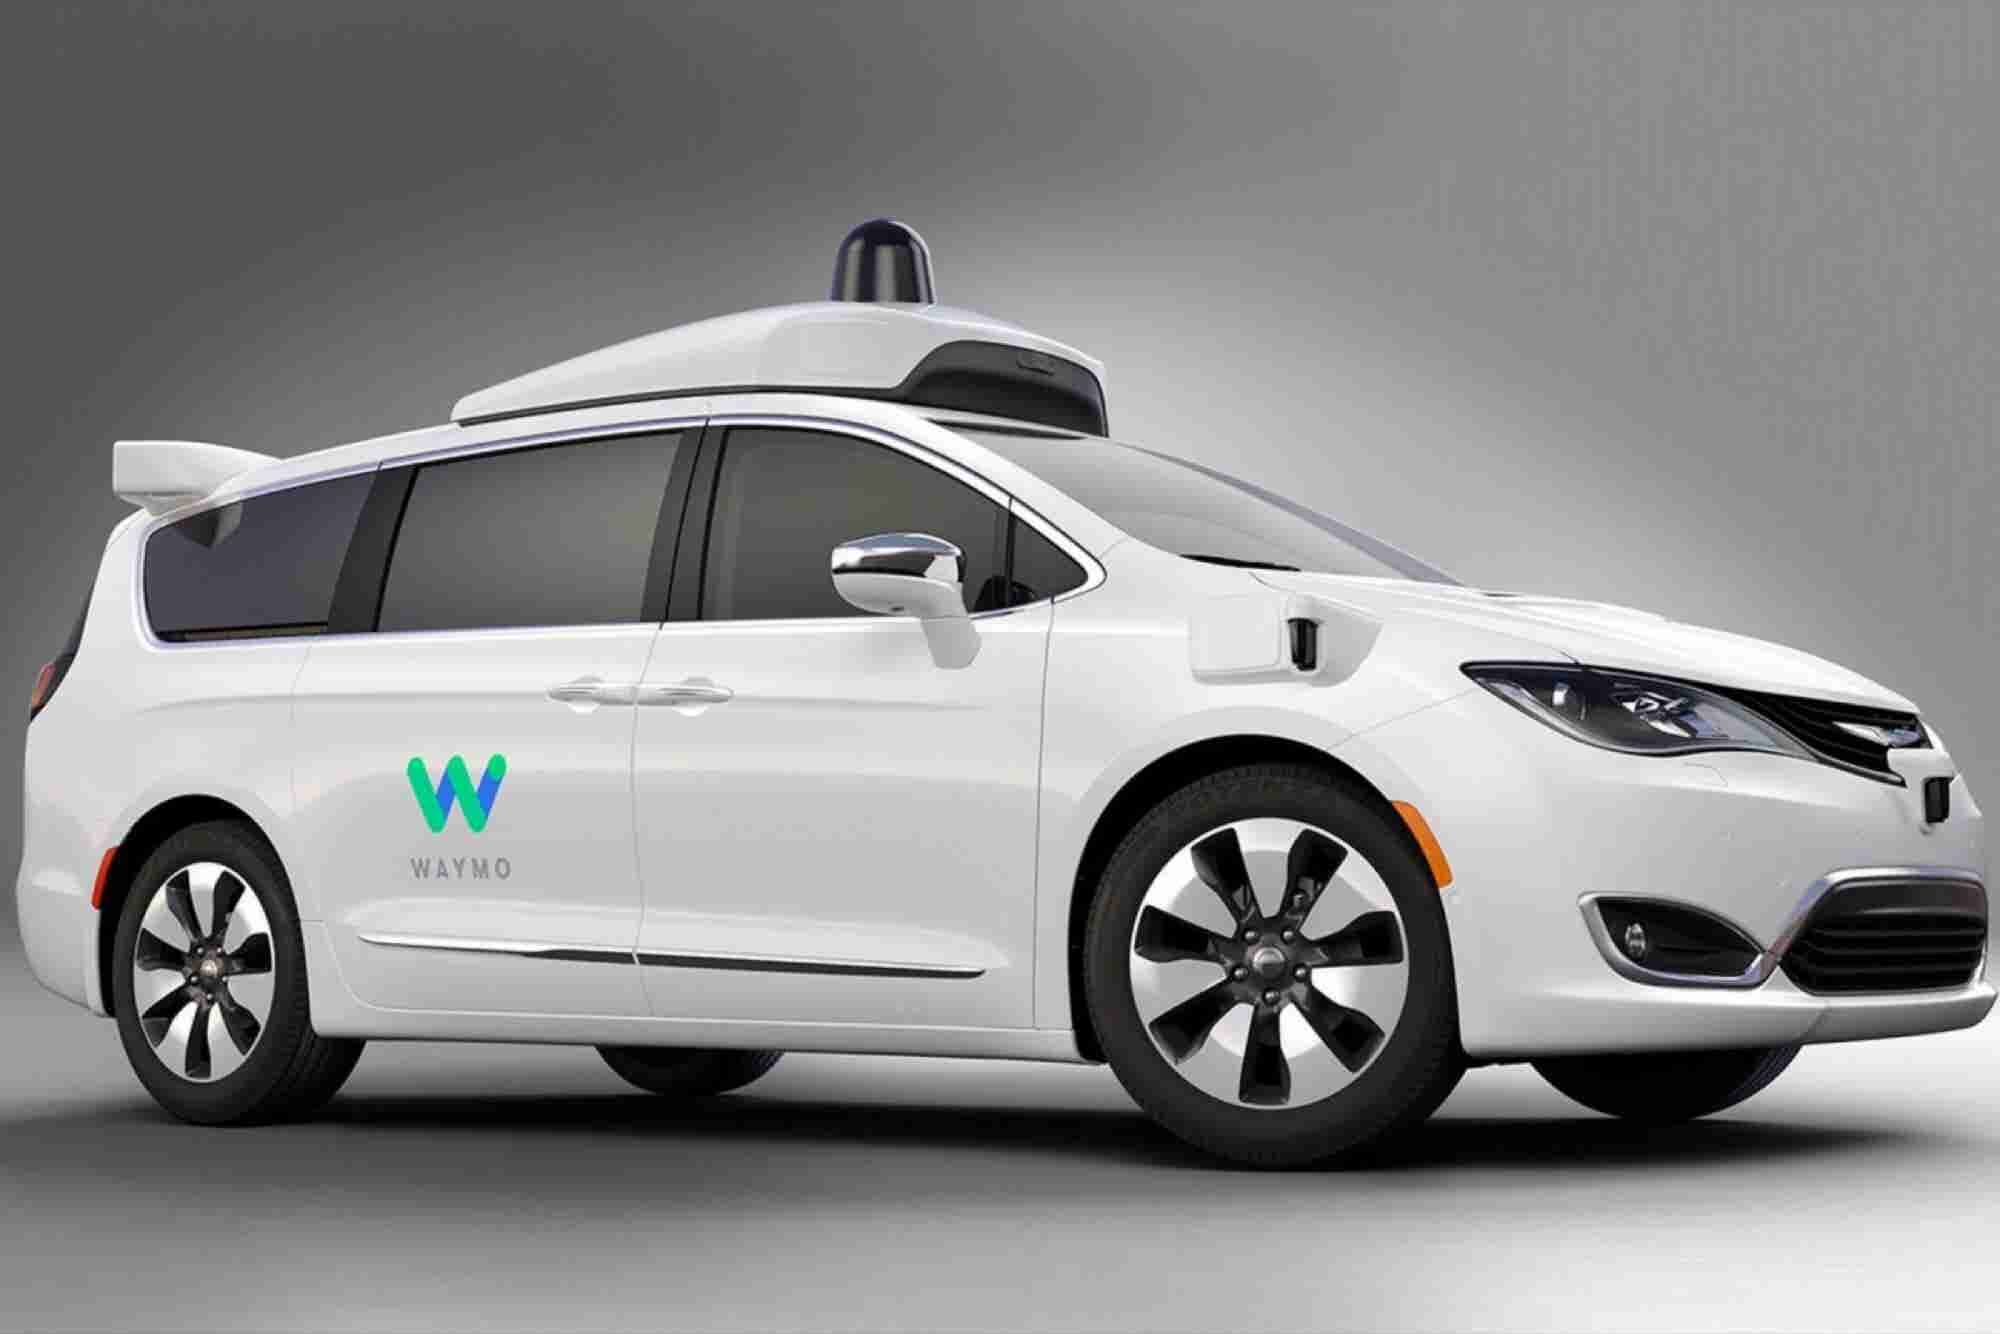 Waymo Moves in on Uber Again With Self-Driving Truck Plans